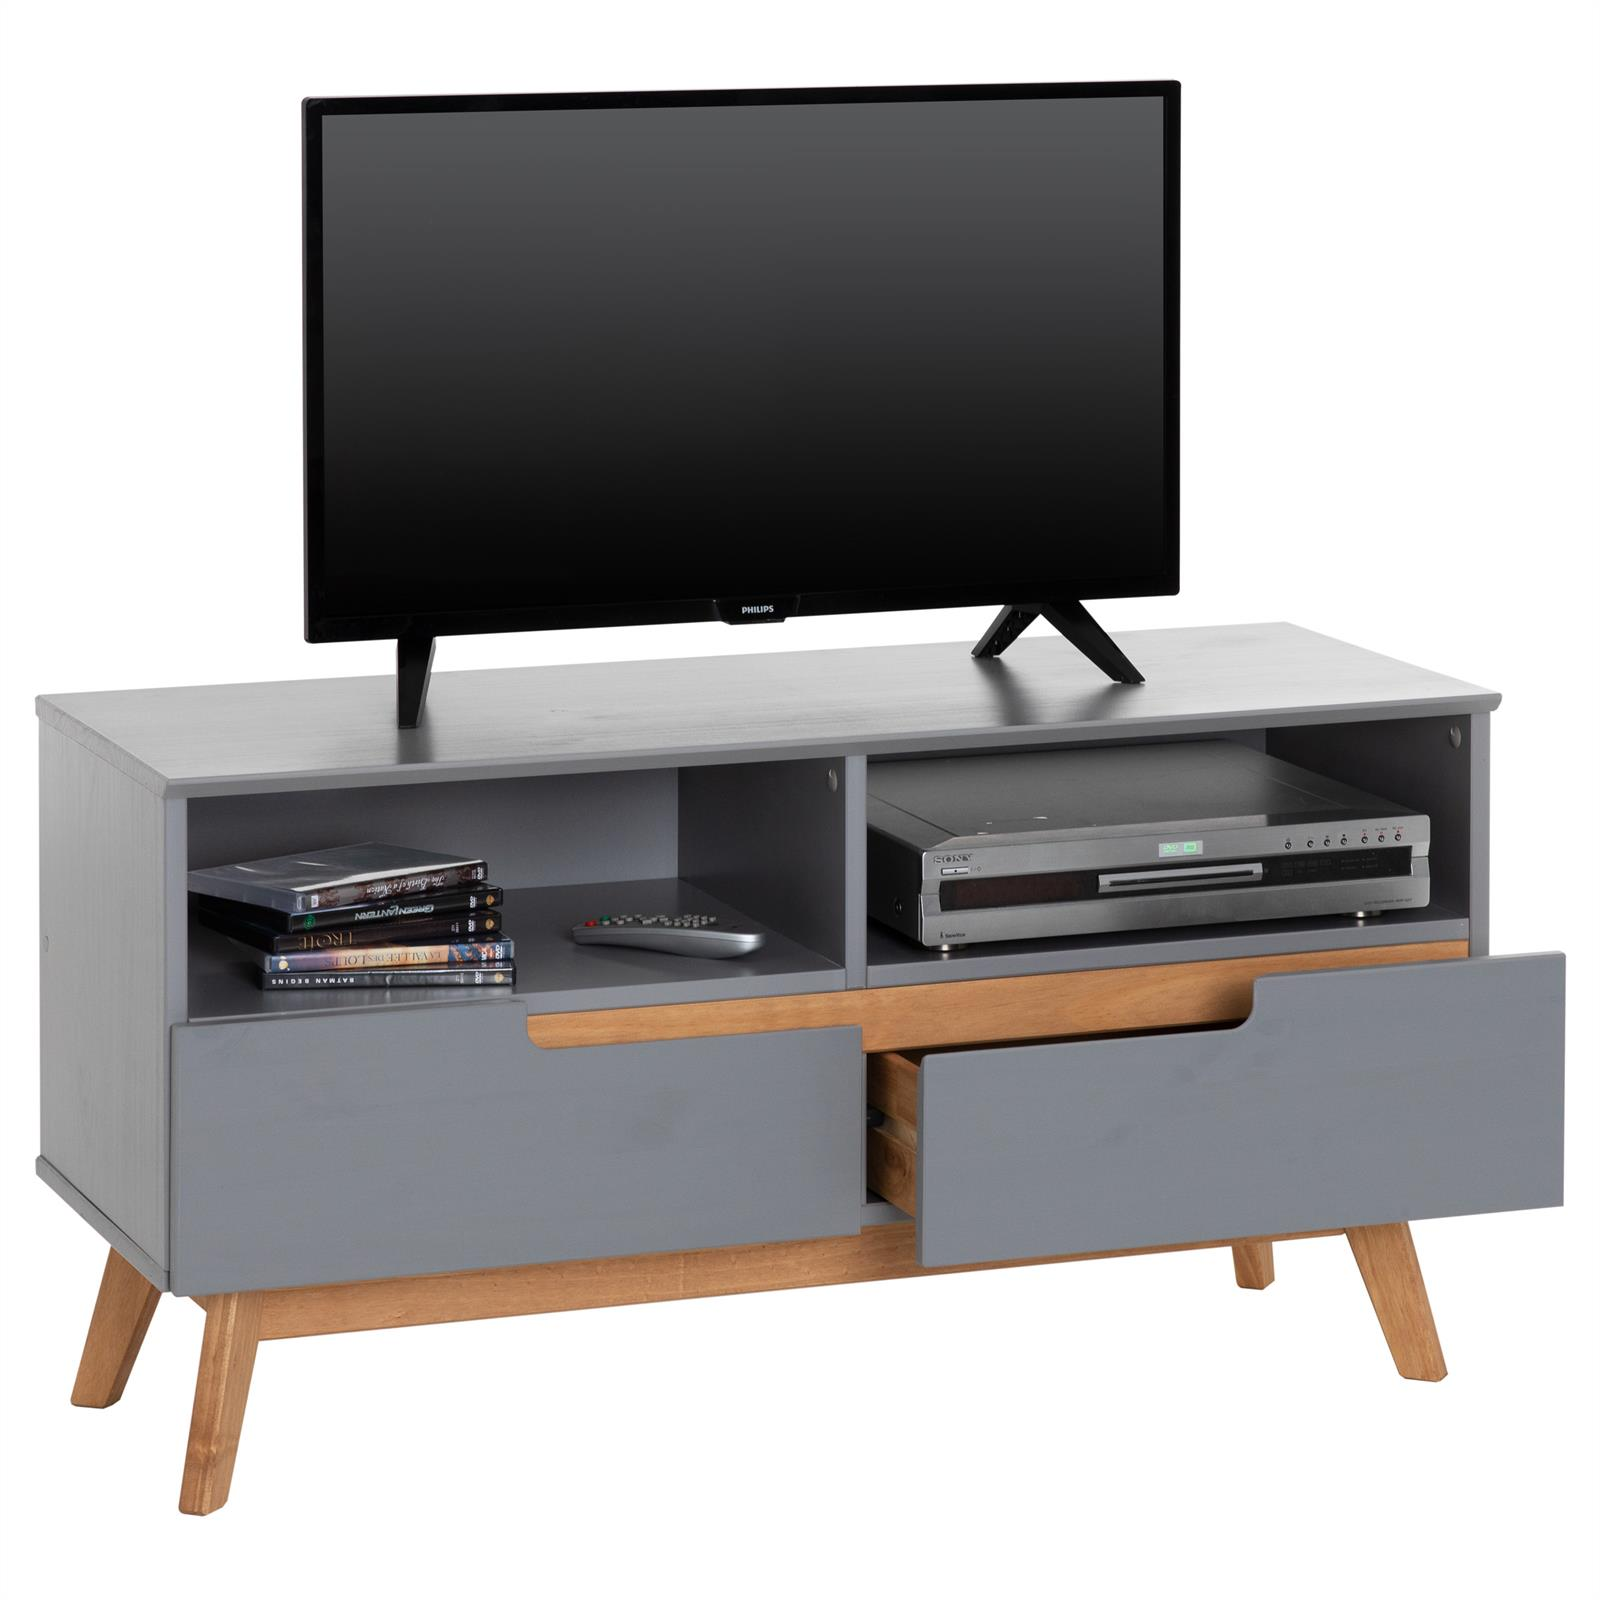 lowboard tv m bel fersehschrank fernsehm bel skandinavisch kiefer massiv ebay. Black Bedroom Furniture Sets. Home Design Ideas